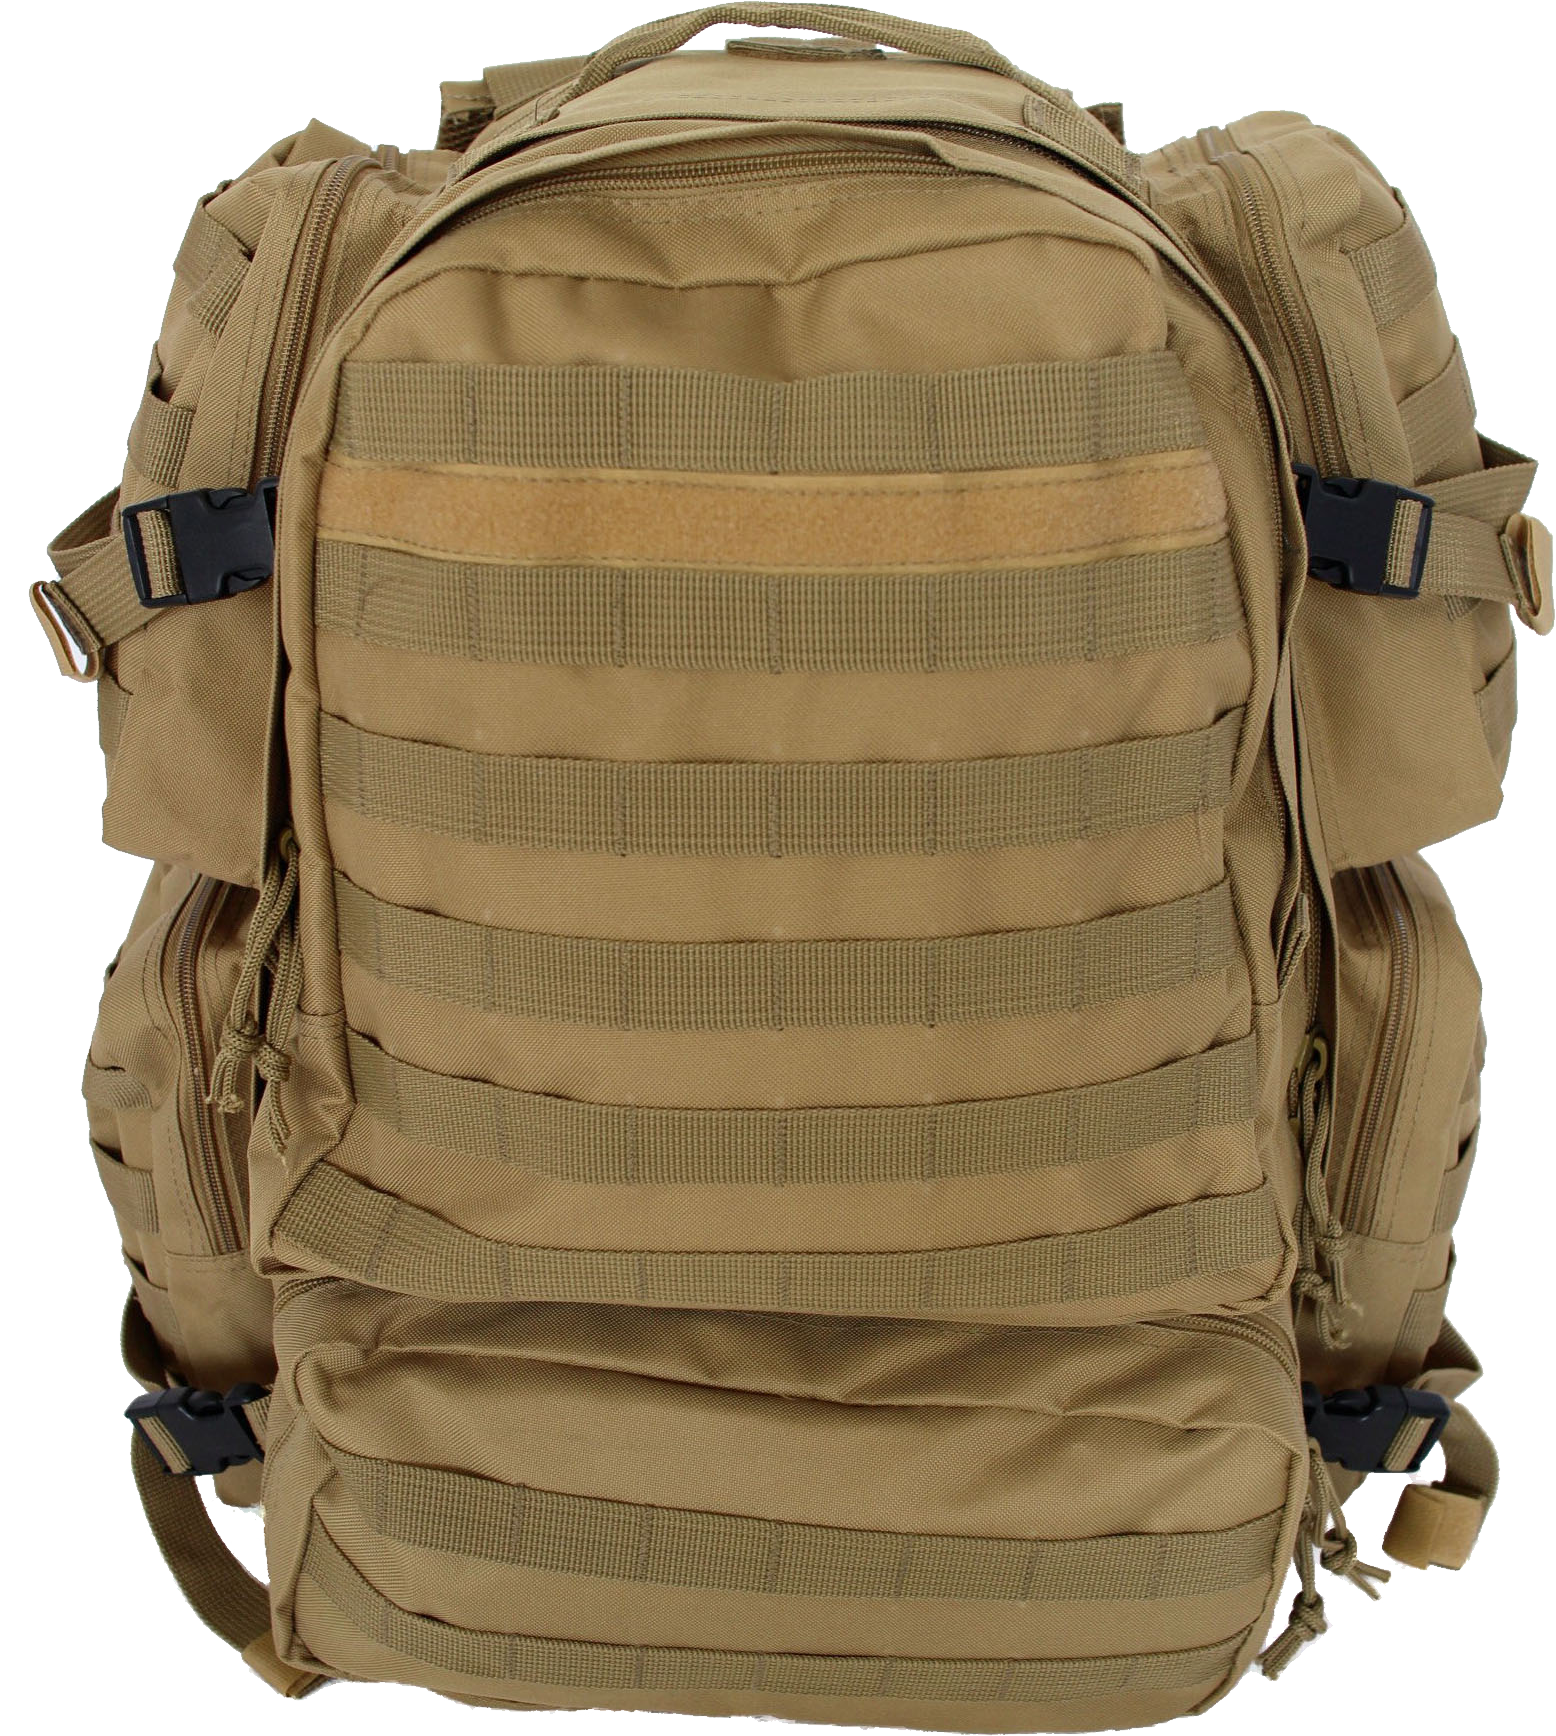 Military tactical sling bag. Hike clipart travel backpack